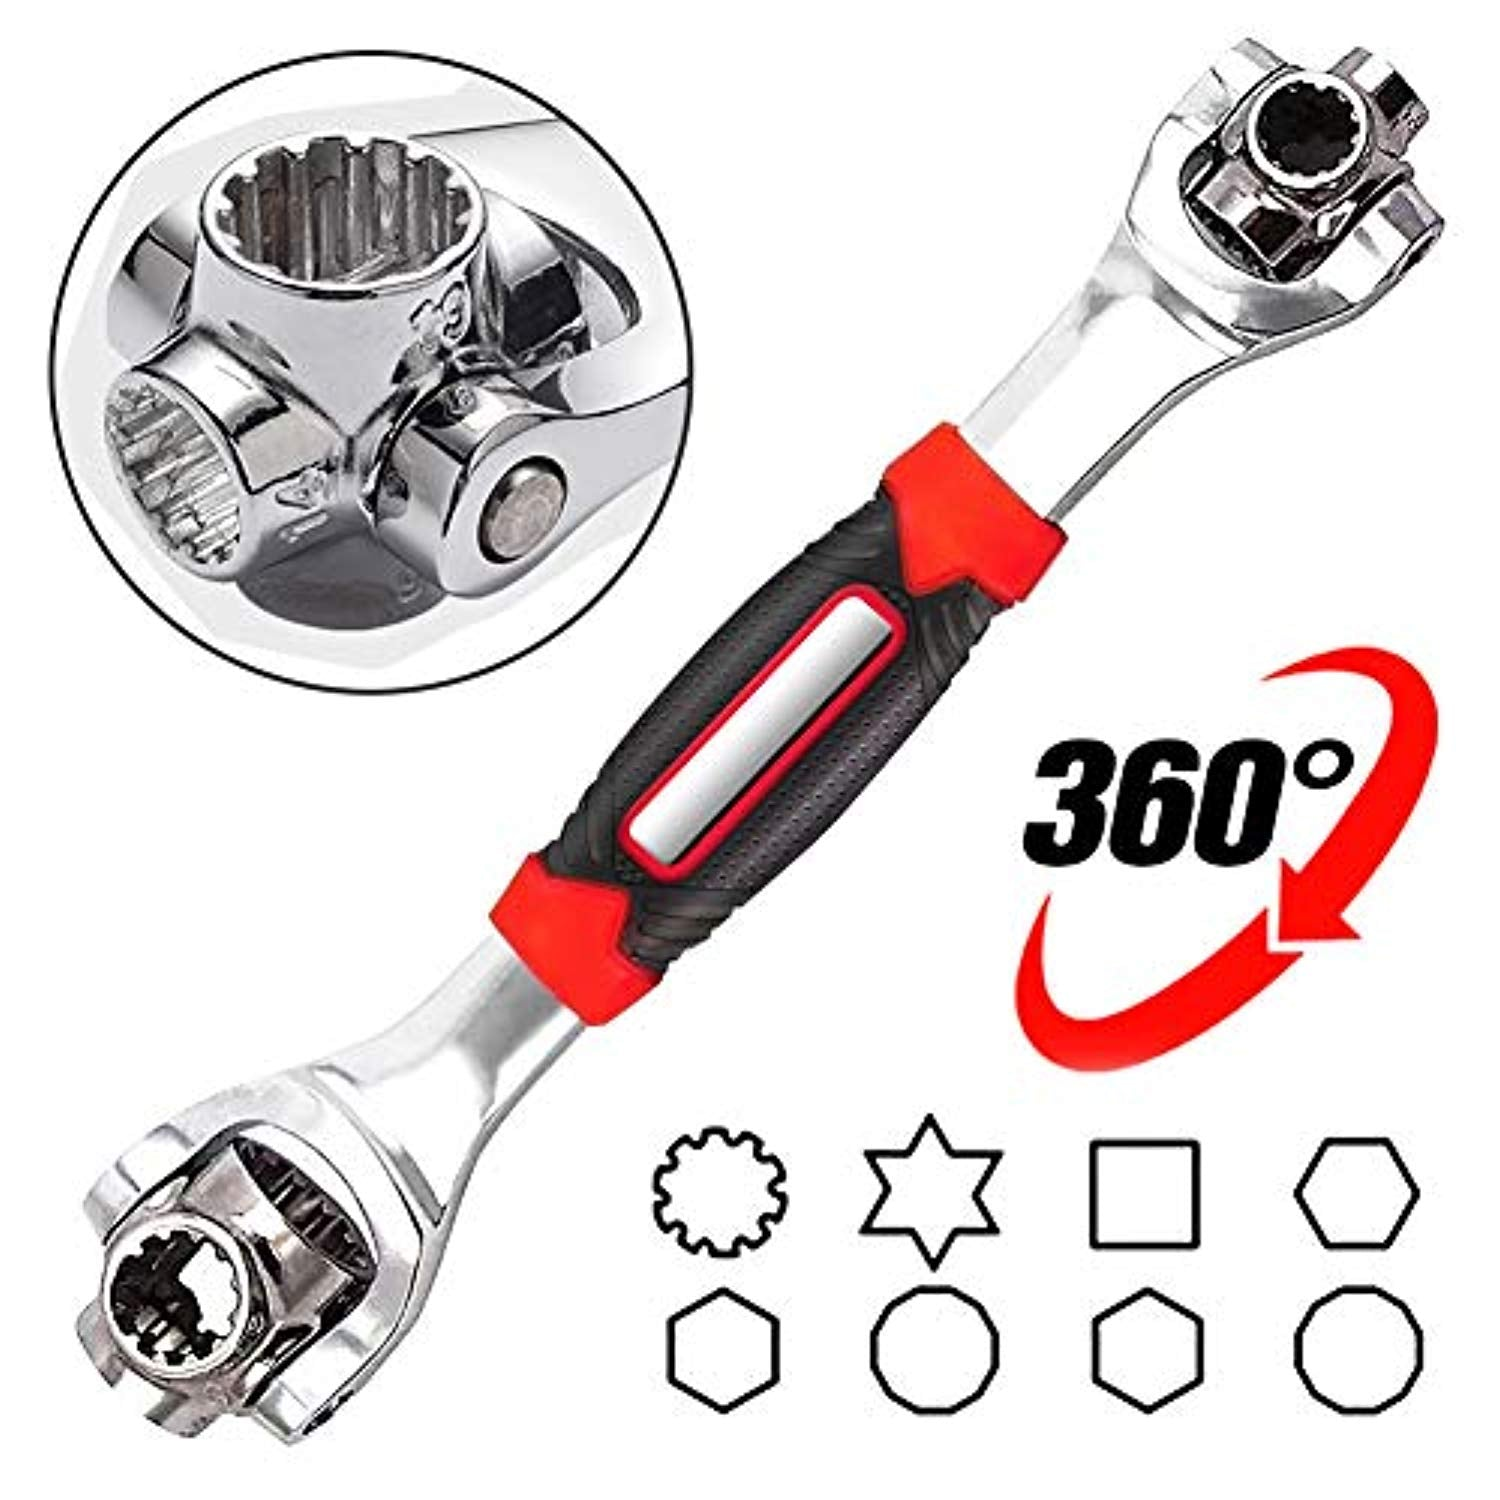 DFUTE Universal Socket Wrench,48 Tools in One Socket, Works with Spline Bolts, 6-Point, 12-Point, Torx, Square Damaged Bolts and Any Size Standard Or Metric, 360 Degree, Home and Auto Repair